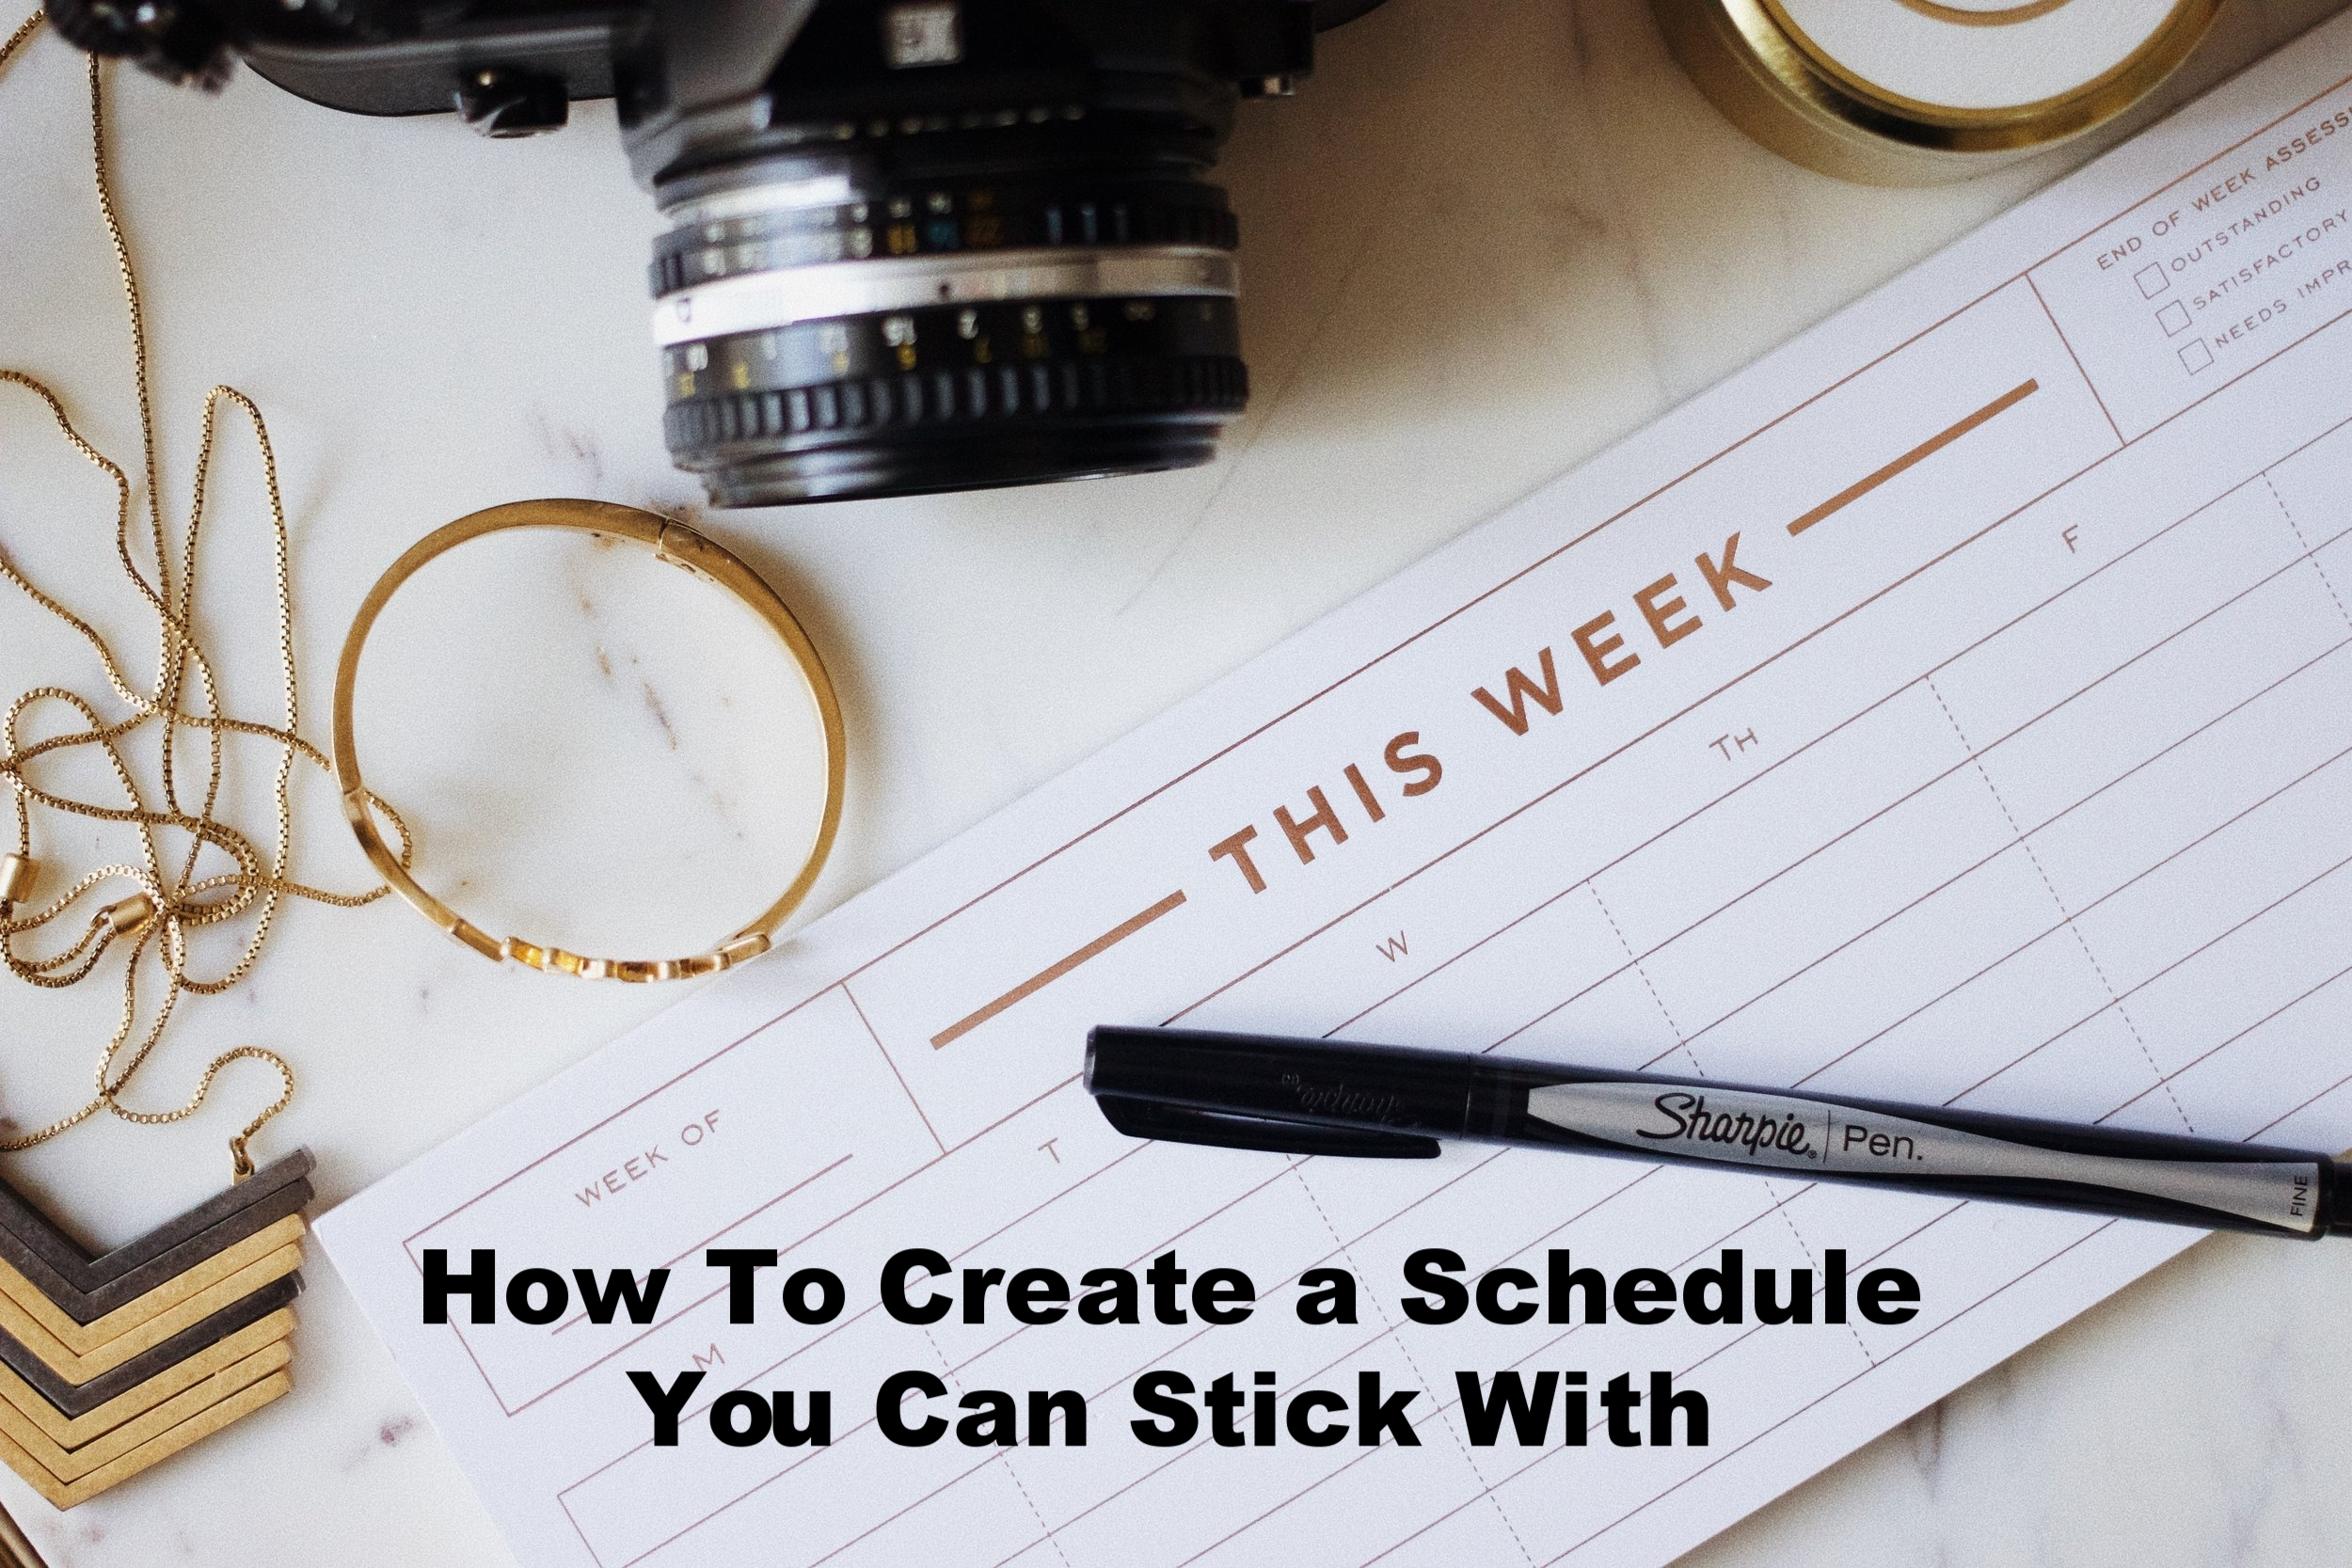 Finally learn to create a schedule that you can stick with.